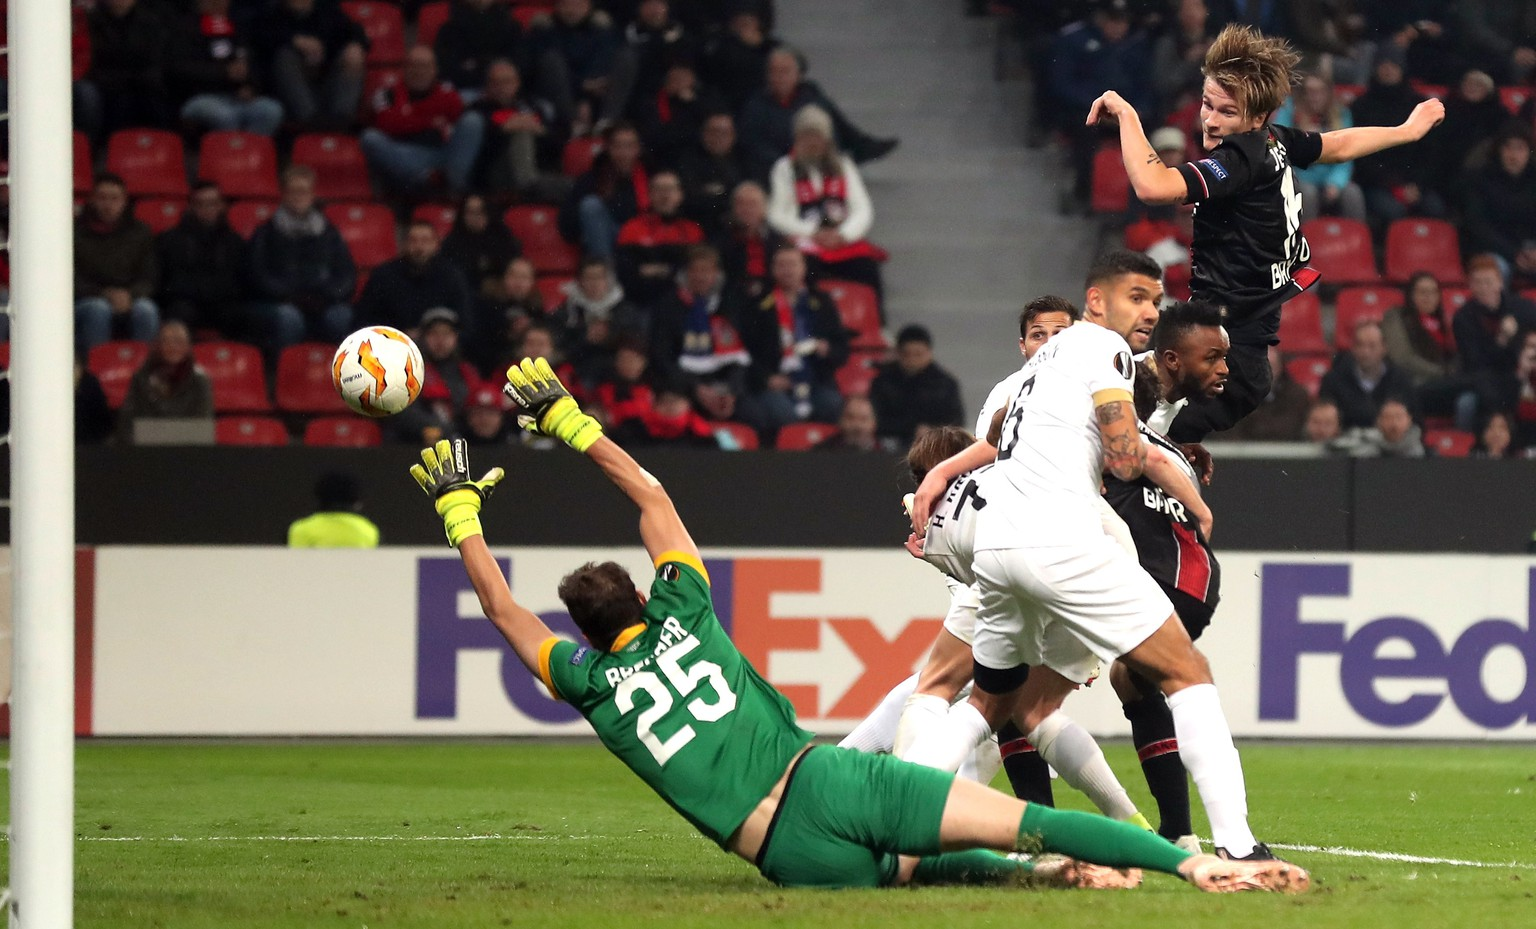 epa07152056 Leverkusen's Tin Jedvaj (R) scoring the first goal during the UEFA Europa League Group A soccer match between Bayer Leverkusen and FC Zuerich in Leverkusen, Germany, 08 November 2018.  EPA/FRIEDEMANN VOGEL